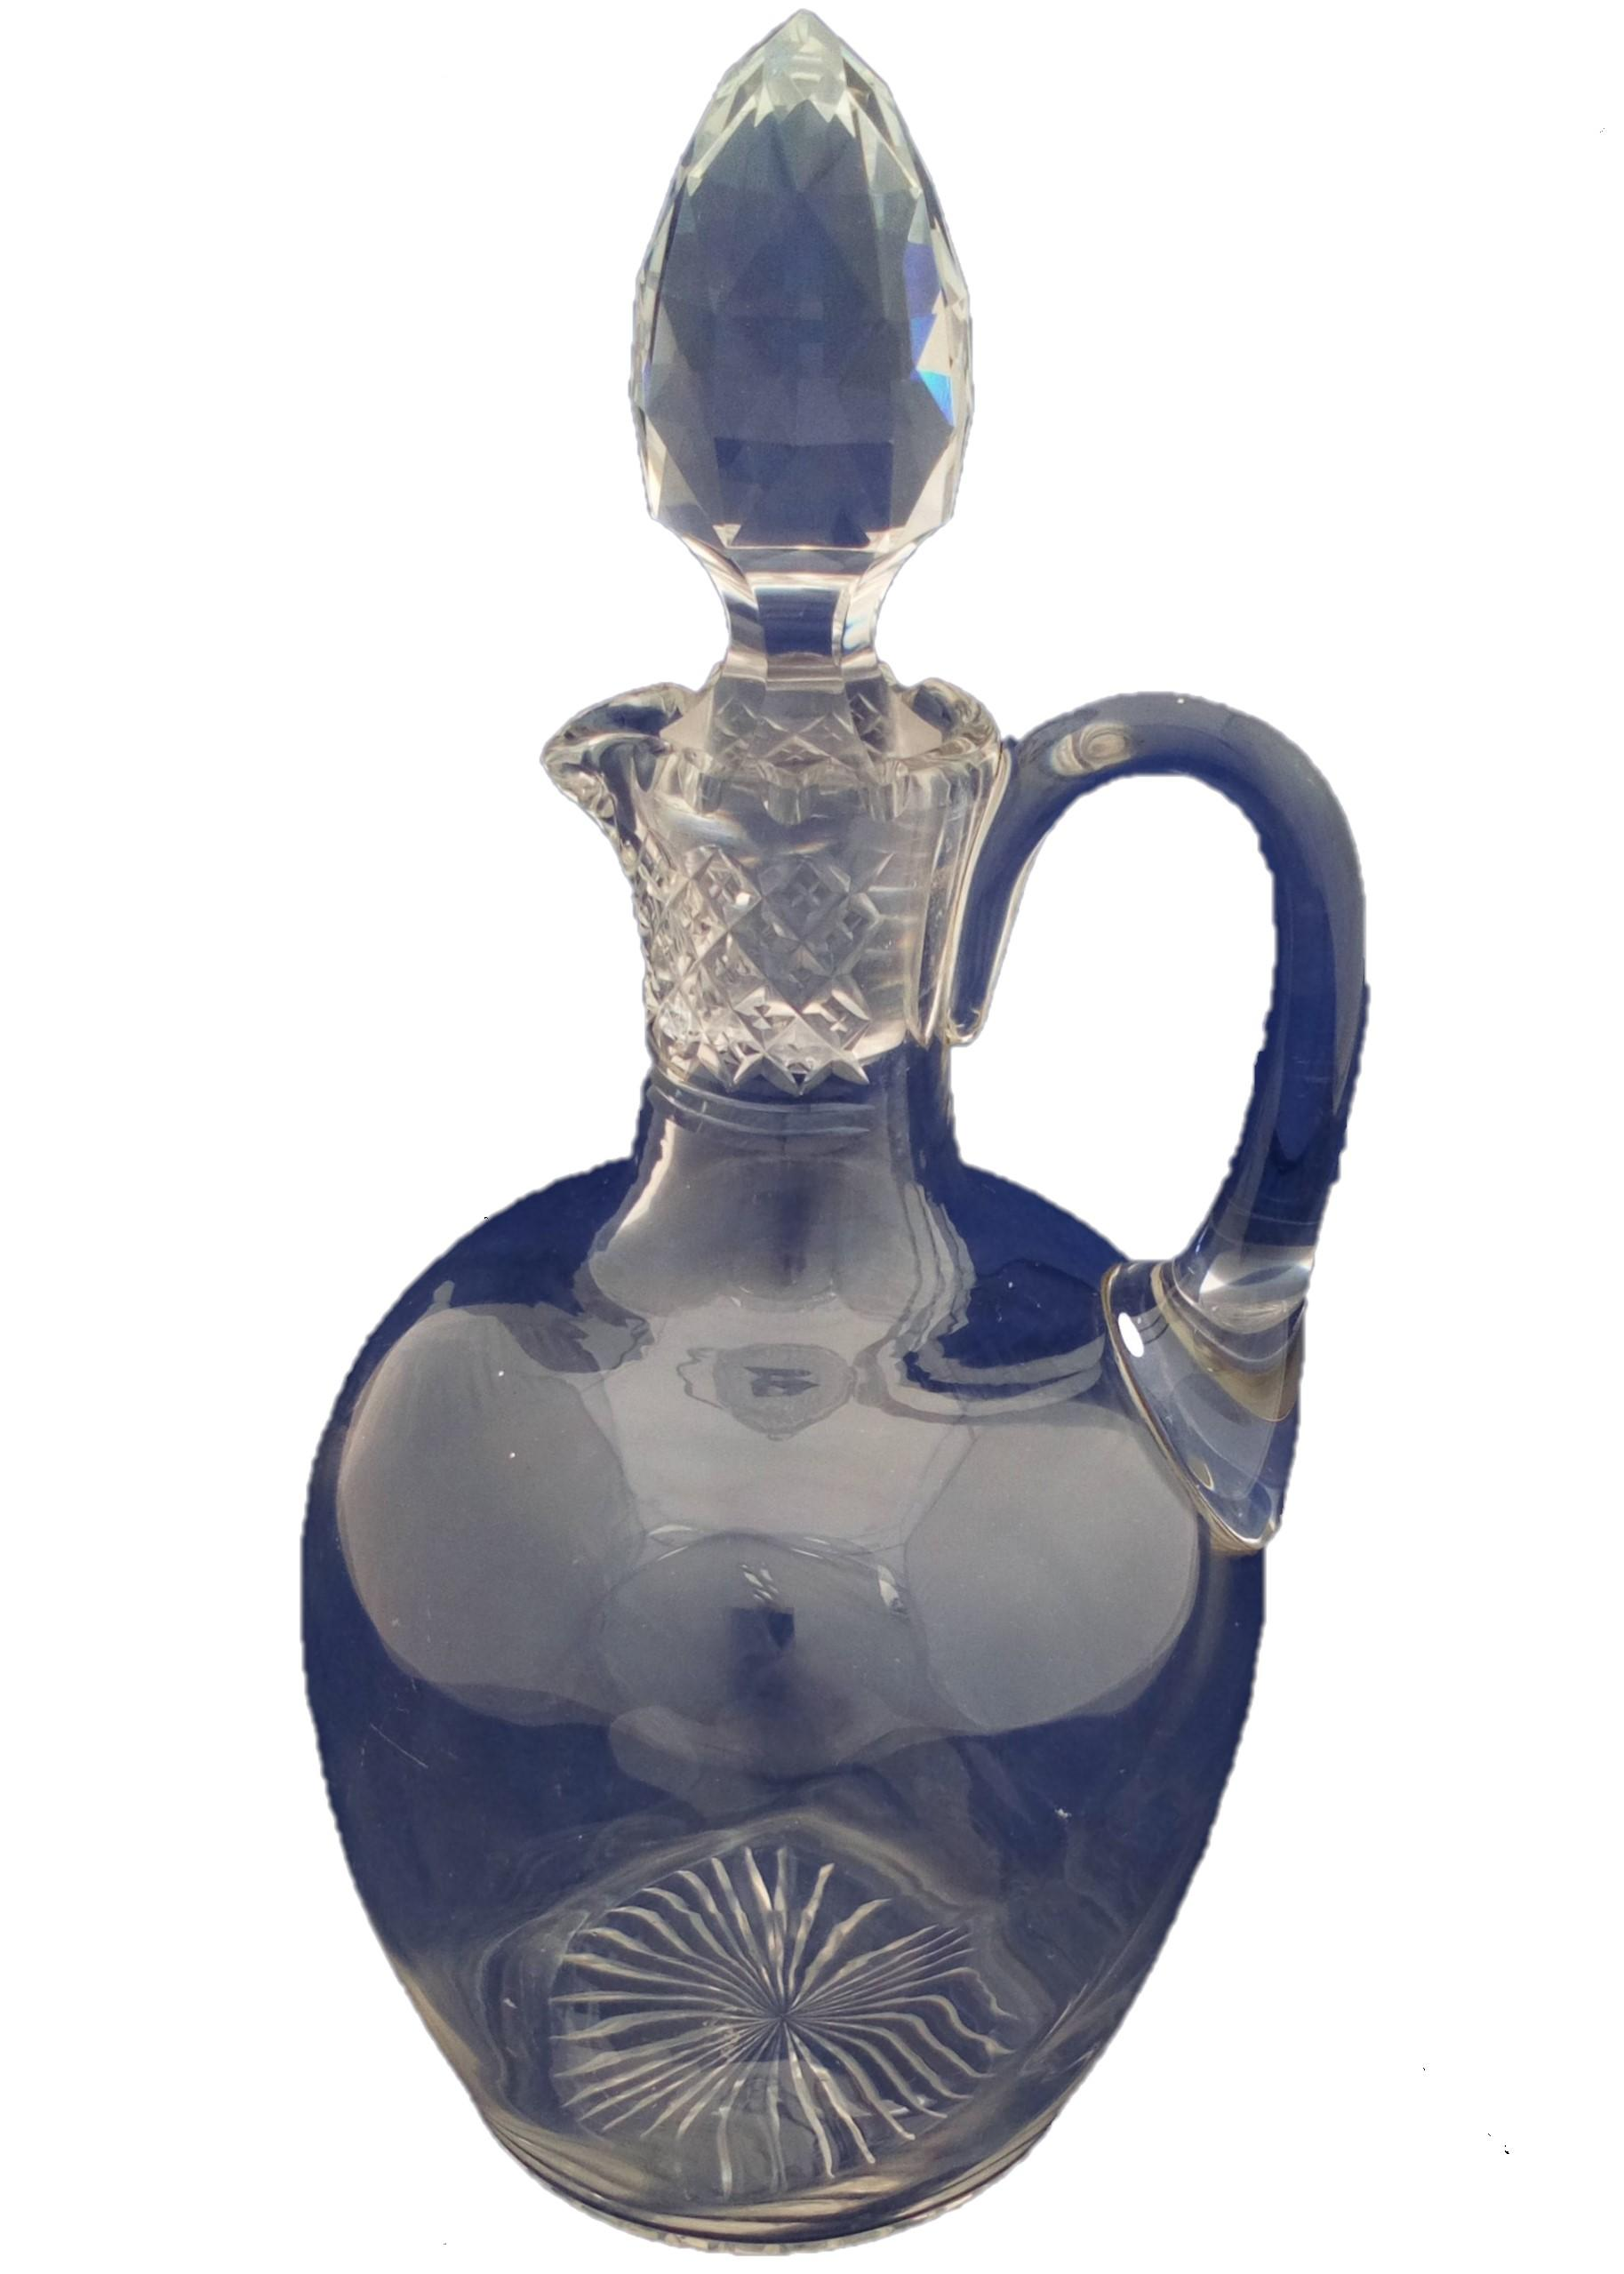 Victorian Wrythen Cut Glass Claret Jug Handled Decanter Cut Neck Stopper circa 1880